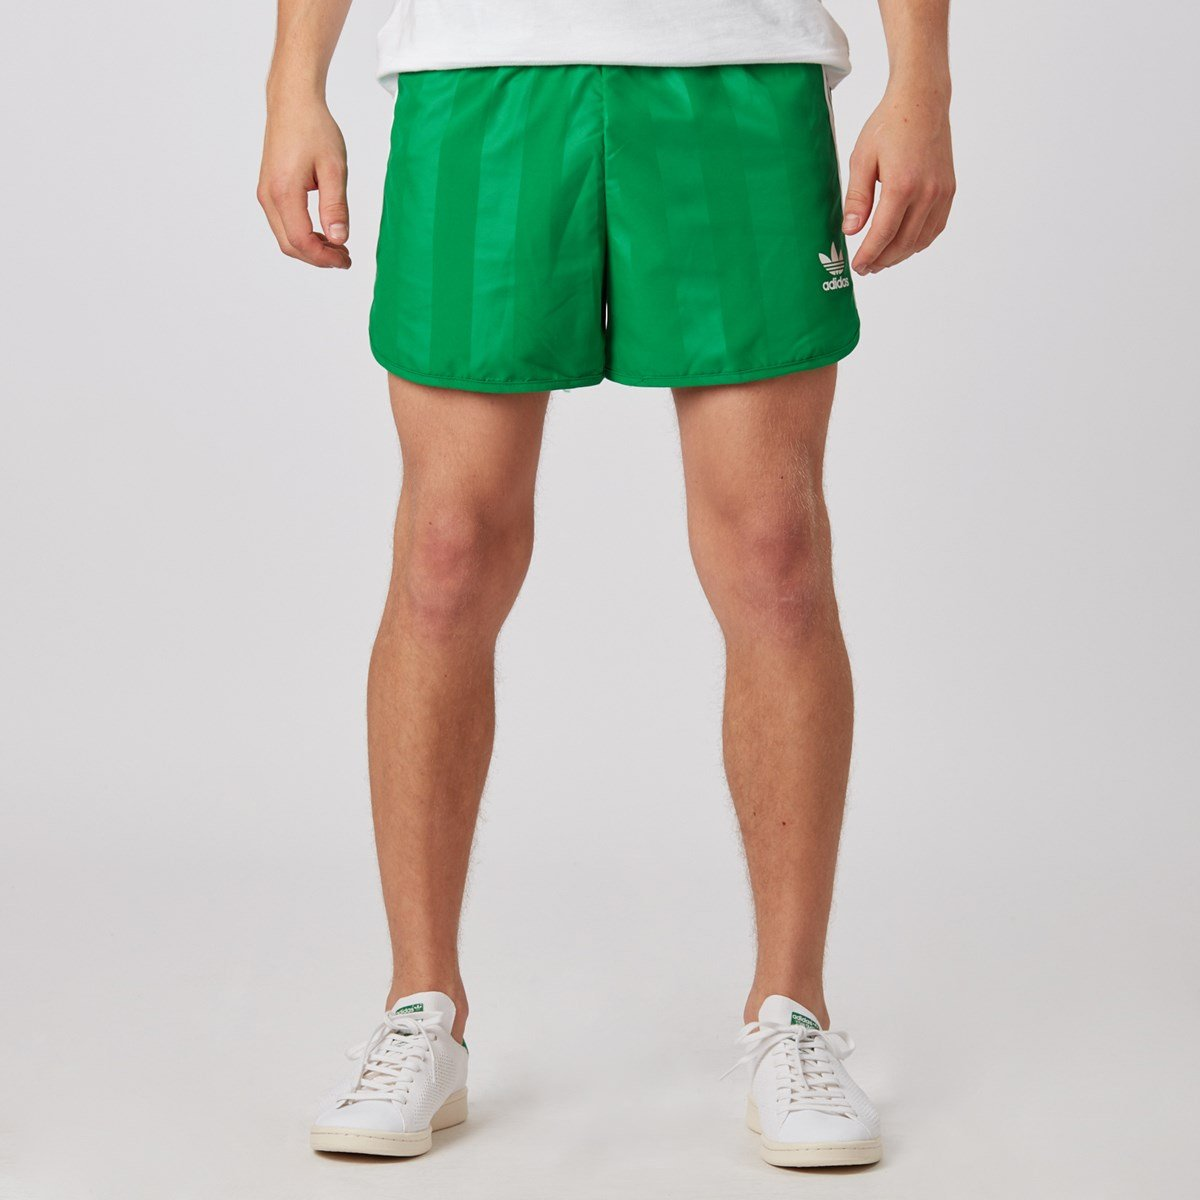 adidas Football Shorts Aj6936 Sneakersnstuff I Sneakers